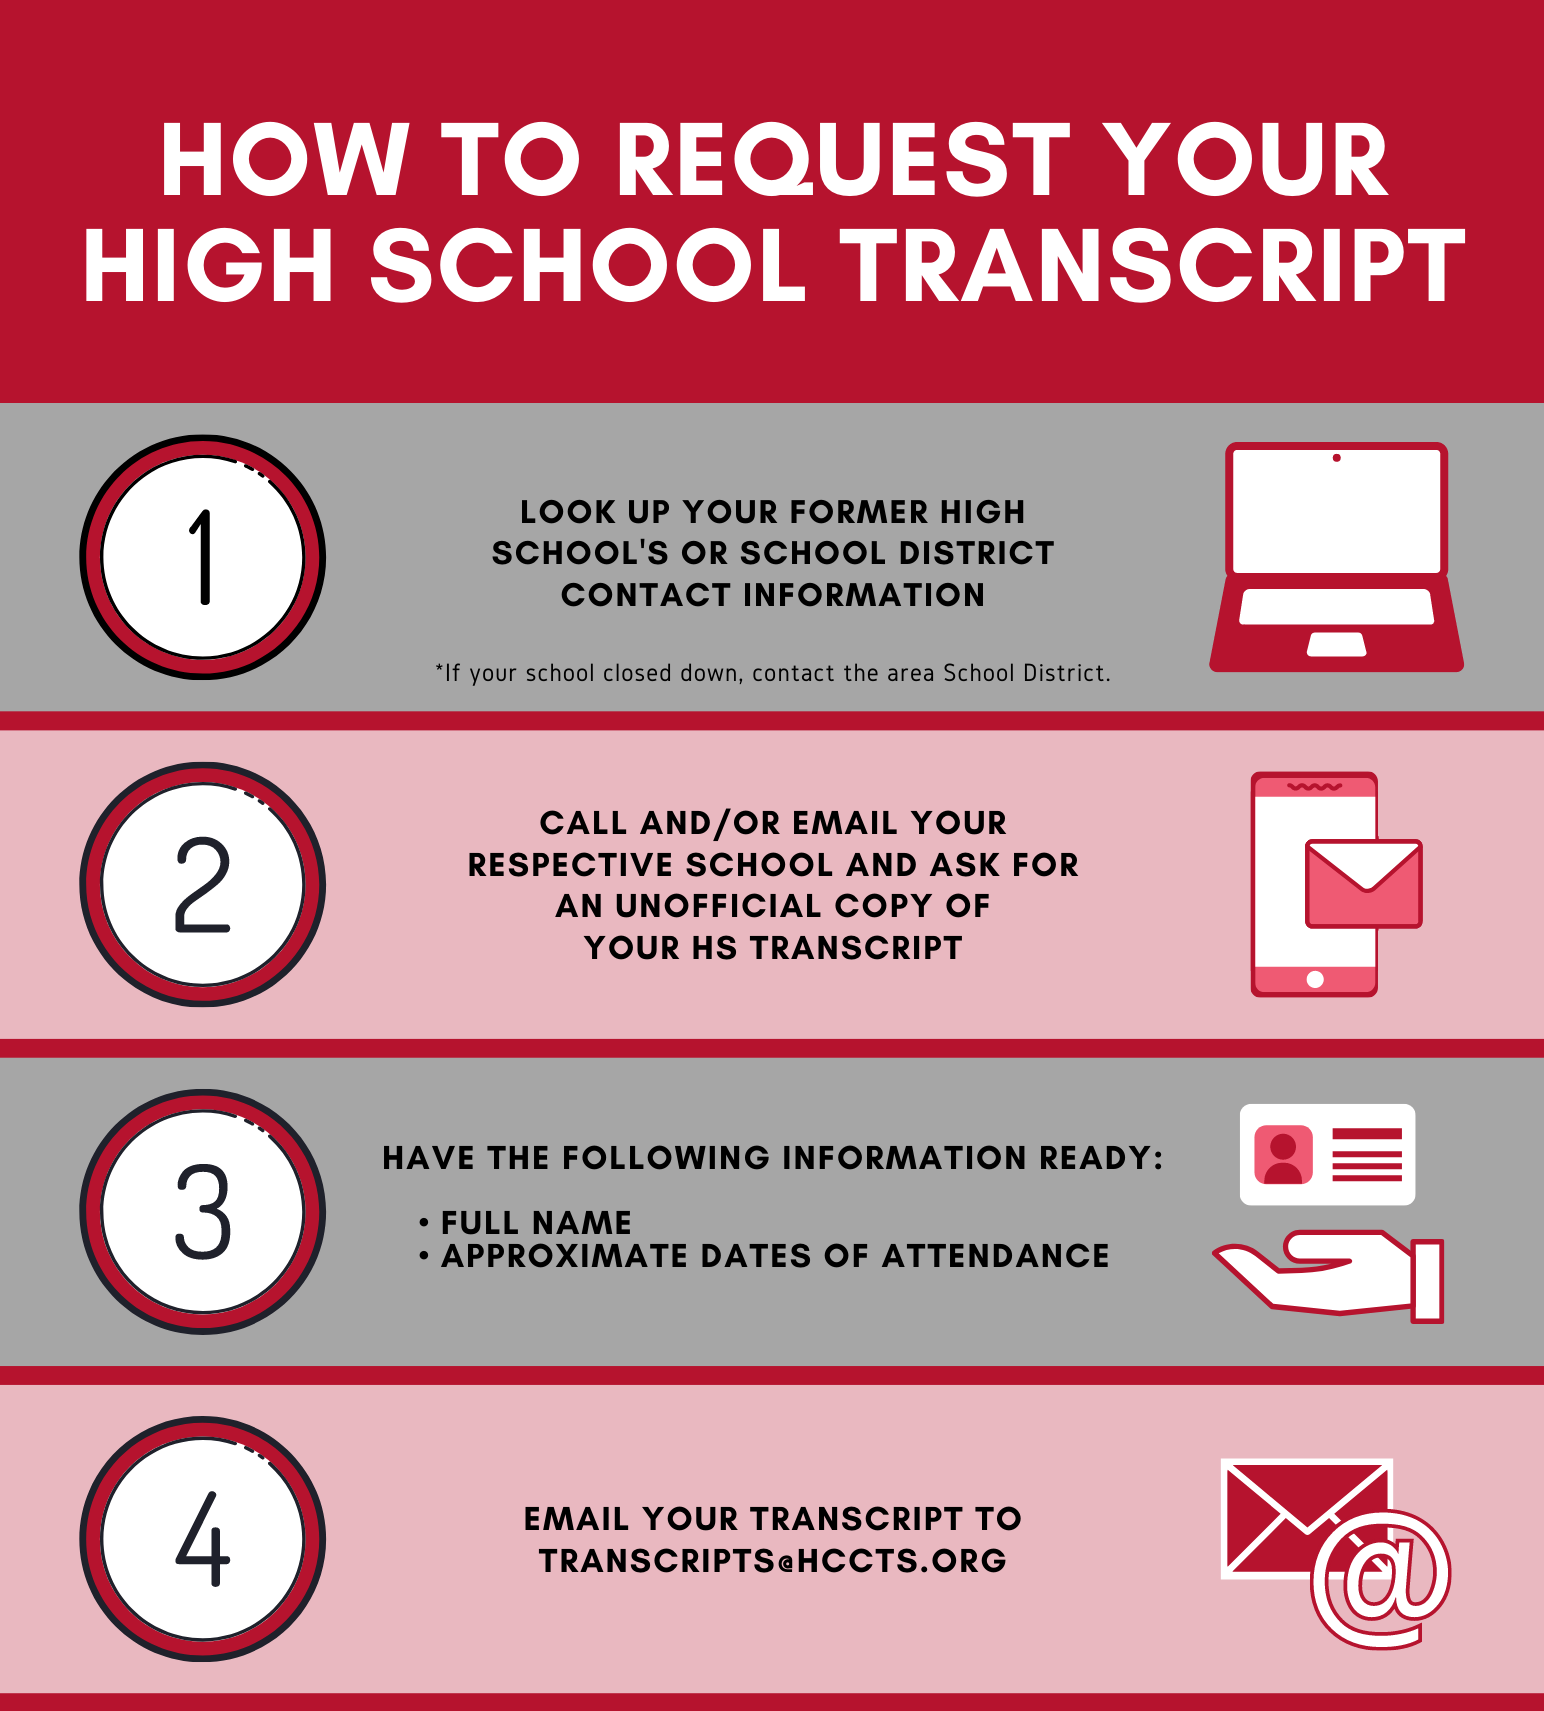 Email your transcript to transcripts@hccts.org